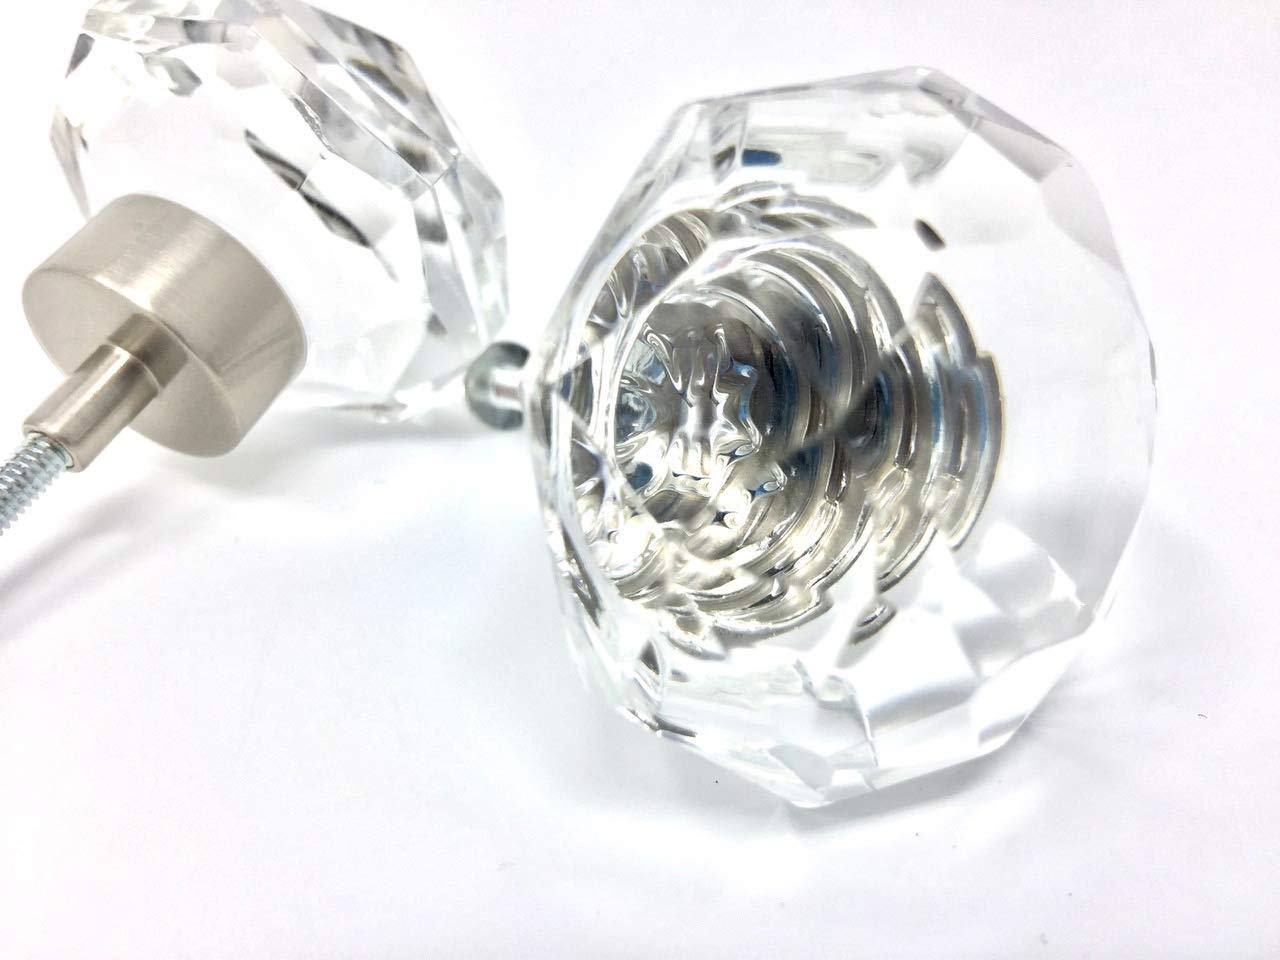 LOTS of 2 of OLD TOWN DIAMOND CUT 24% Lead Crystal Glass Ice Clear Knob Pulls - BRUSHED NICKEL trim. 1-1/4'' in diameter. Add Deco Accent to any Cabinets, Shutters, Furniture, BiFold Doors by Rousso & Mayfair